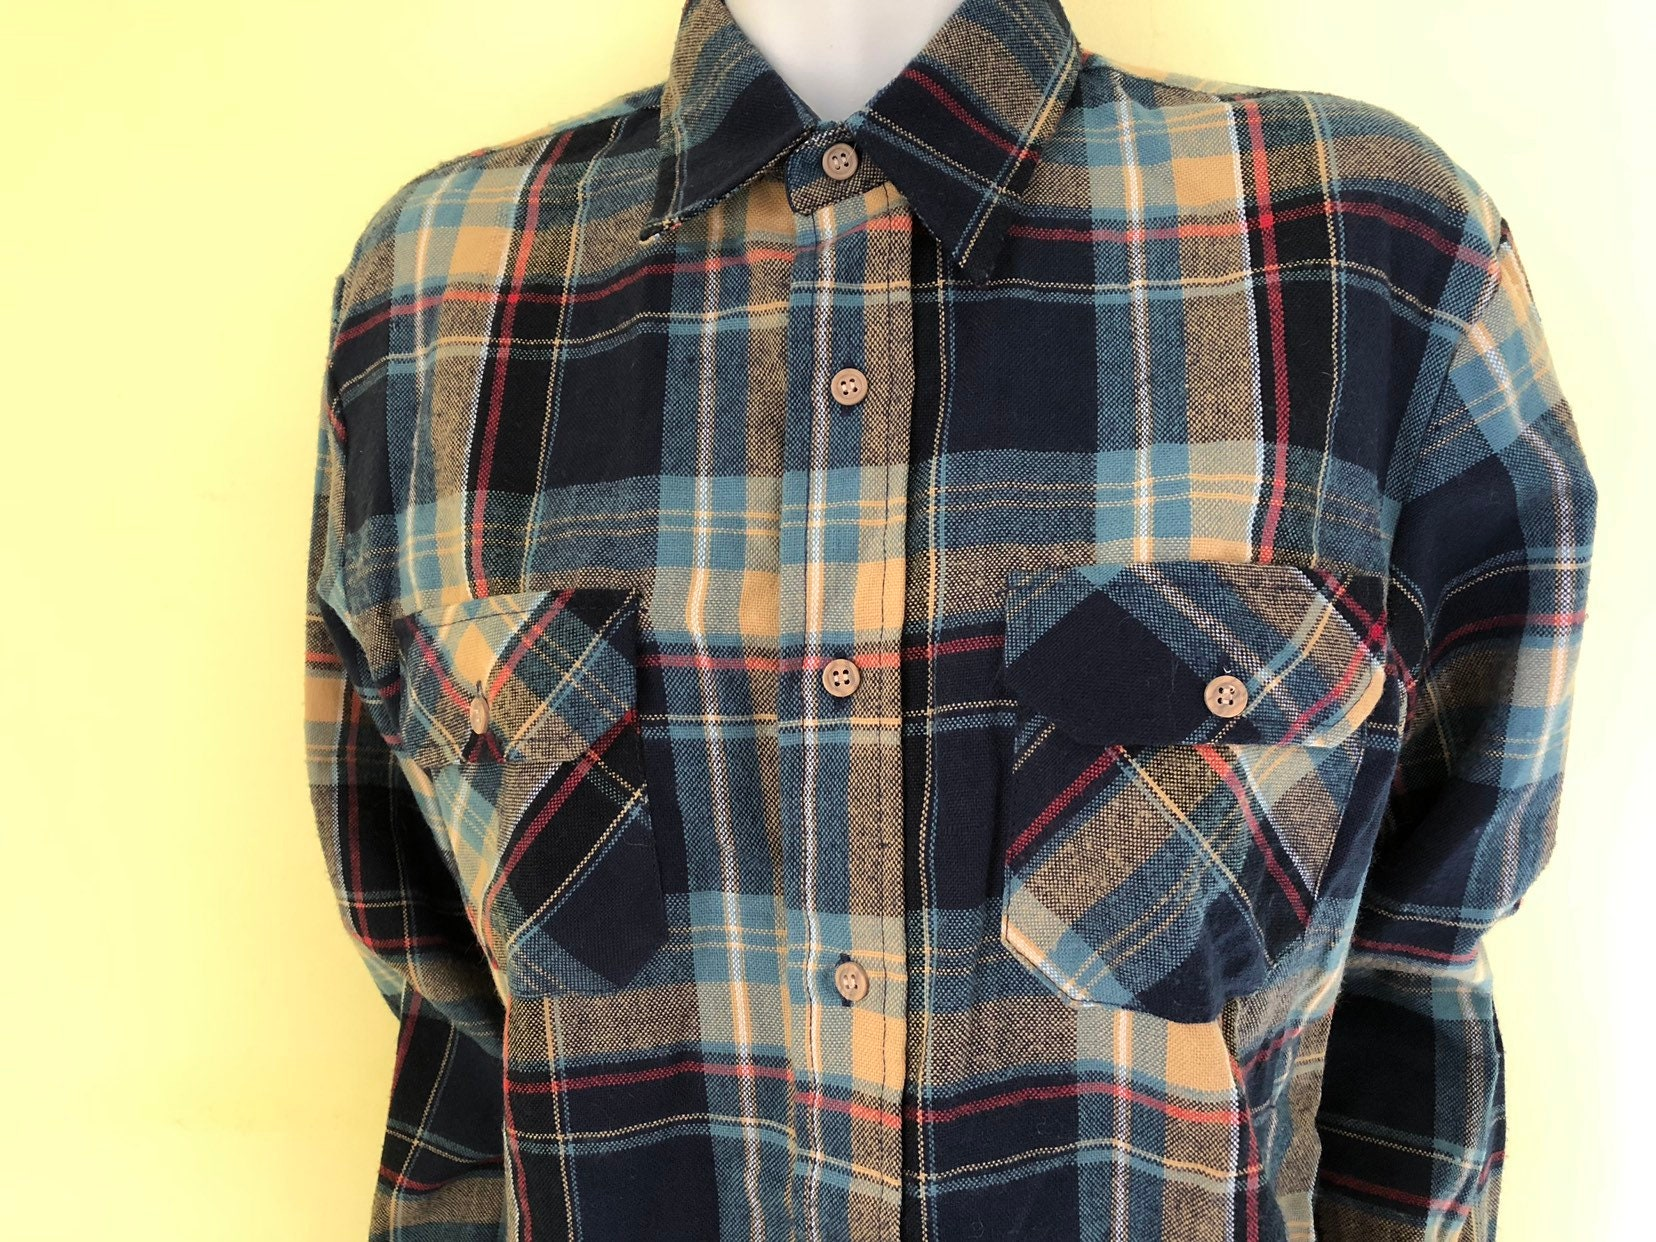 1970s Mens Shirt Styles – Vintage 70s Shirts for Guys 1970s, Sears, Acrylic Plaid, Western, , Oxford Shirt, Mens Size 15-15 12 $0.00 AT vintagedancer.com